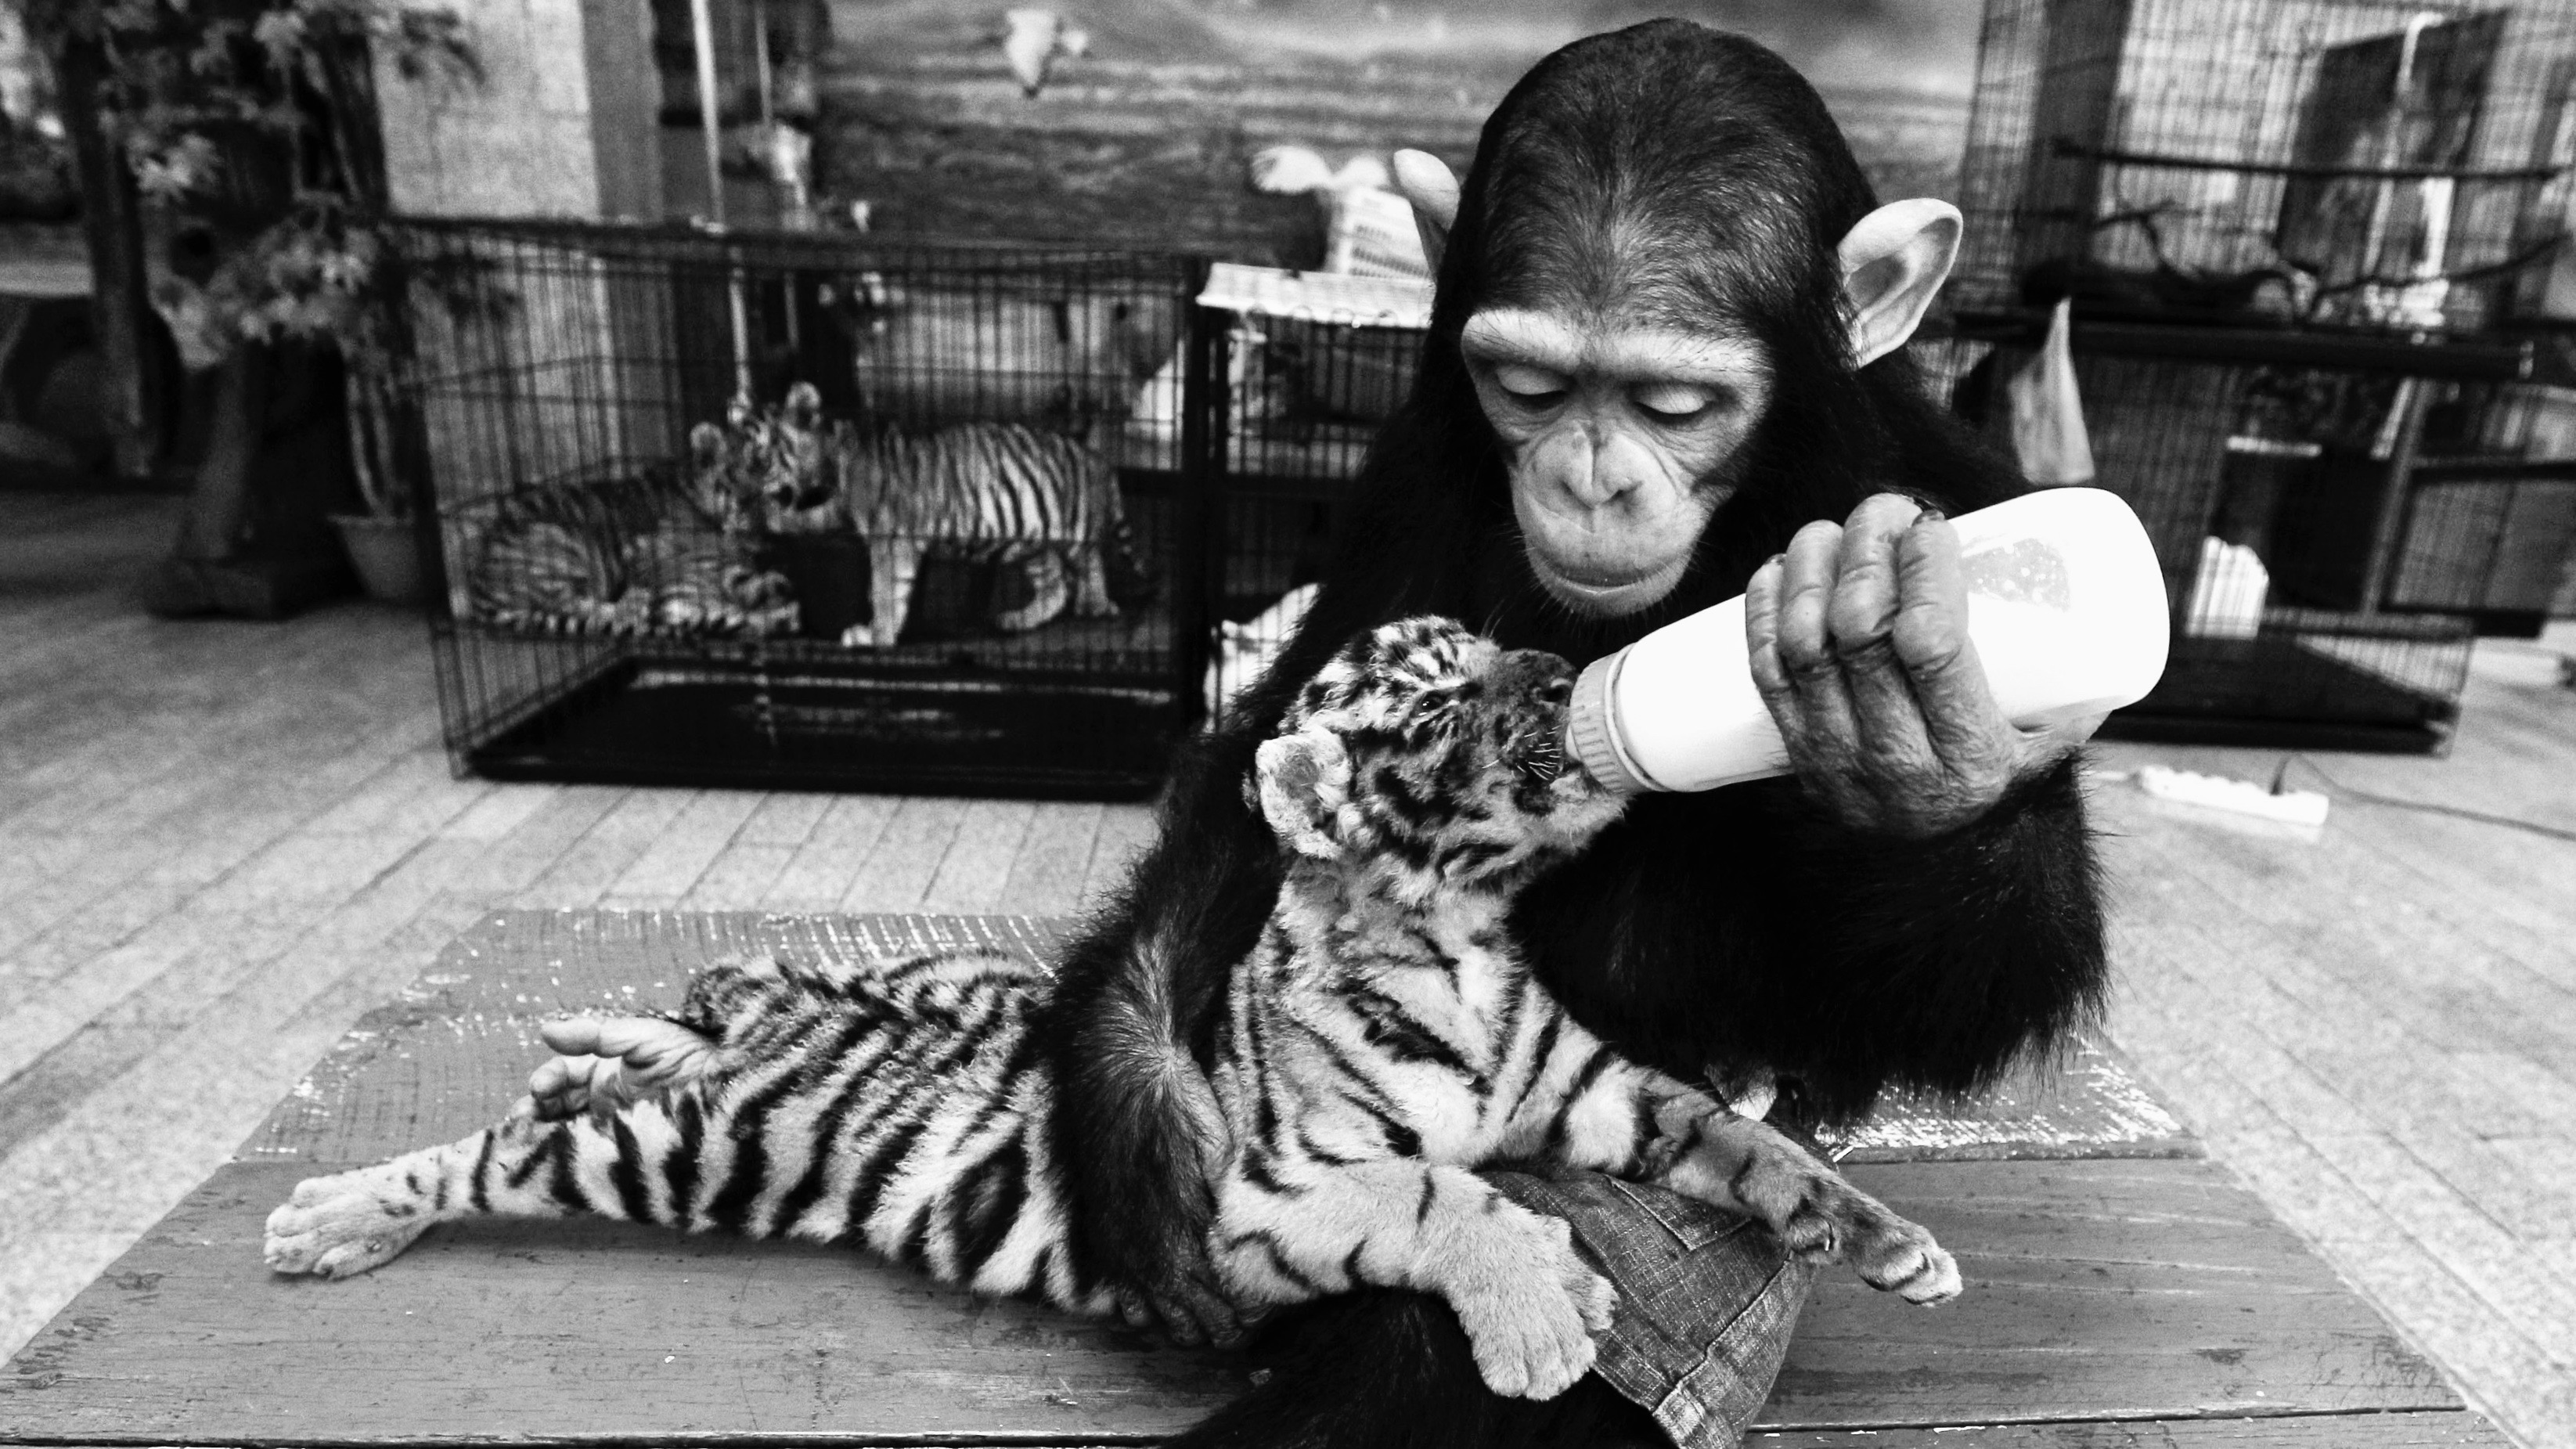 A two-year-old chimpanzee feeds milk to a 60-day-old tiger cub in Thailand.